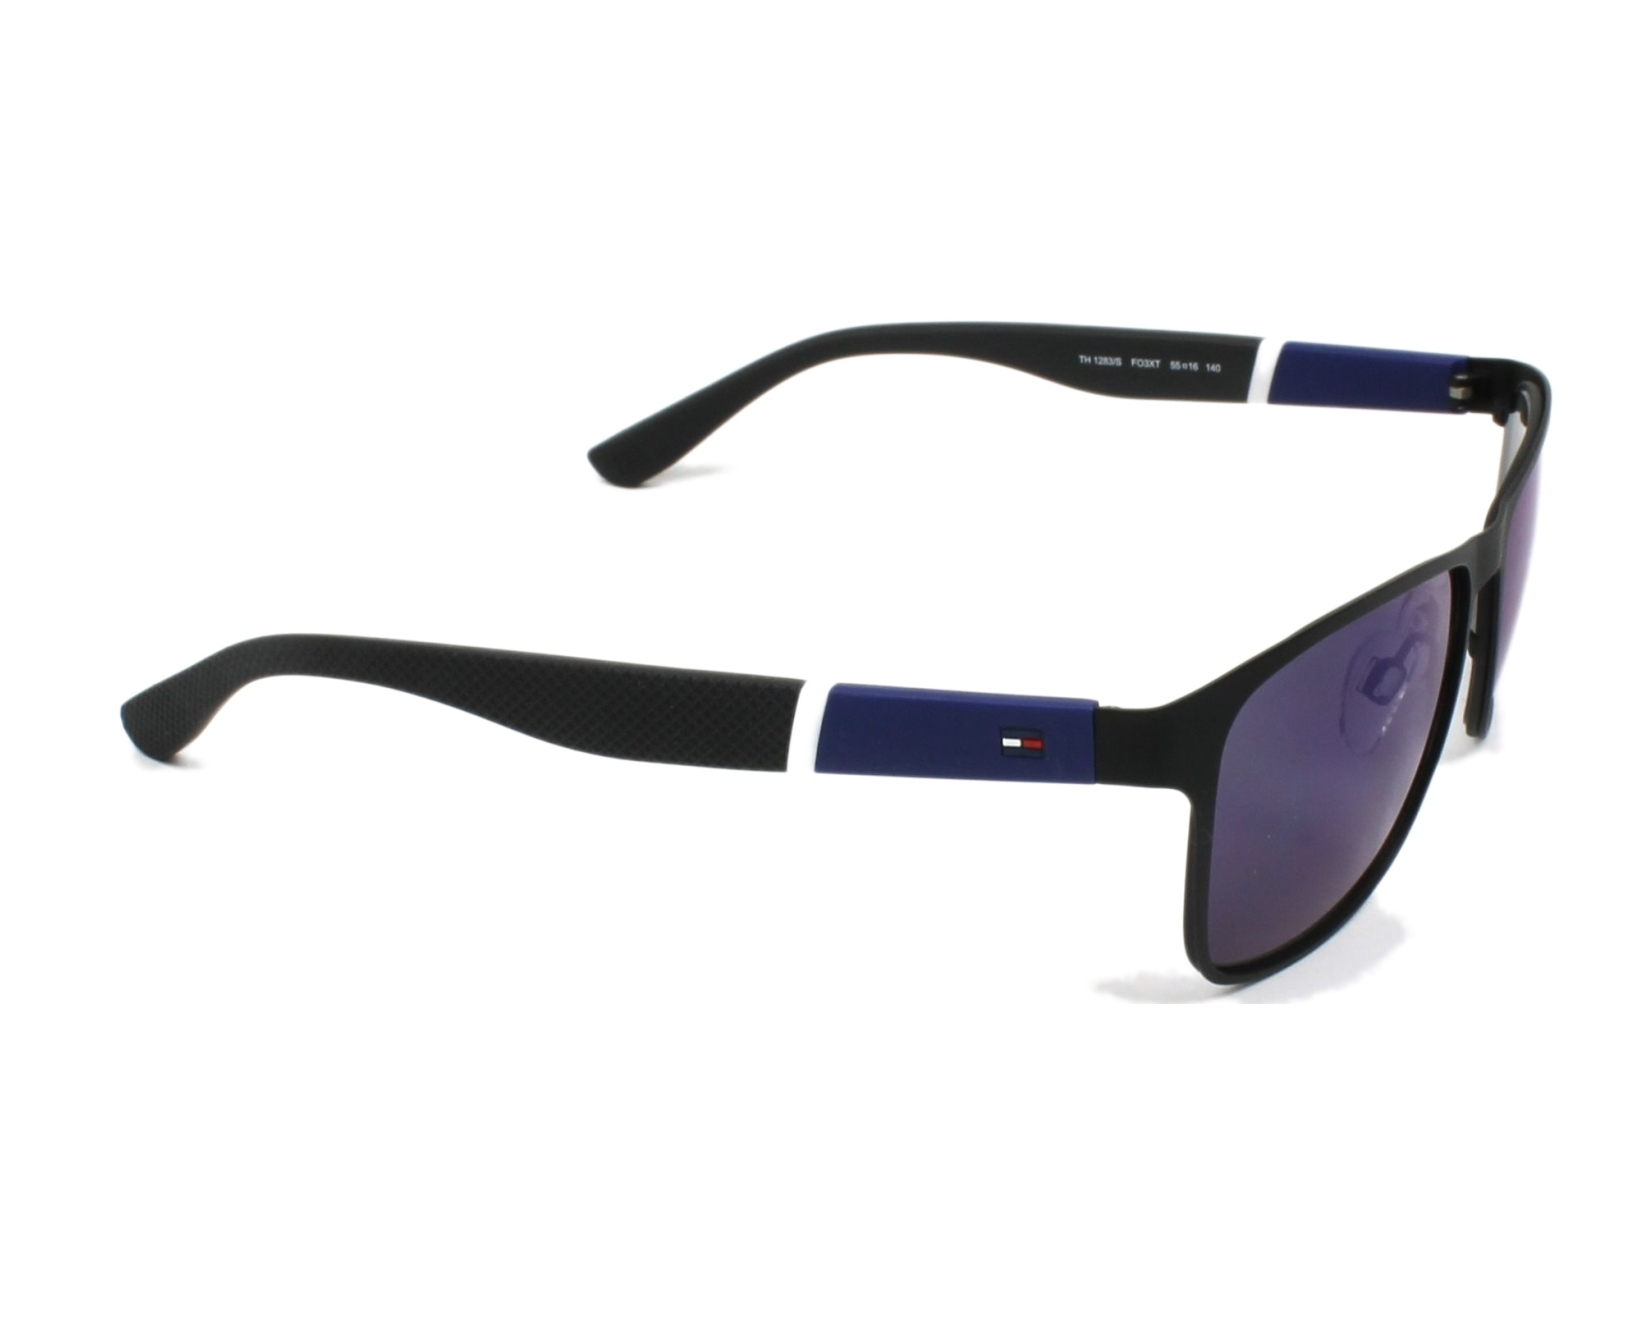 Tommy Hilfiger TH 1283/S FO3/XT 55 mm/16 mm gDDtzMFn